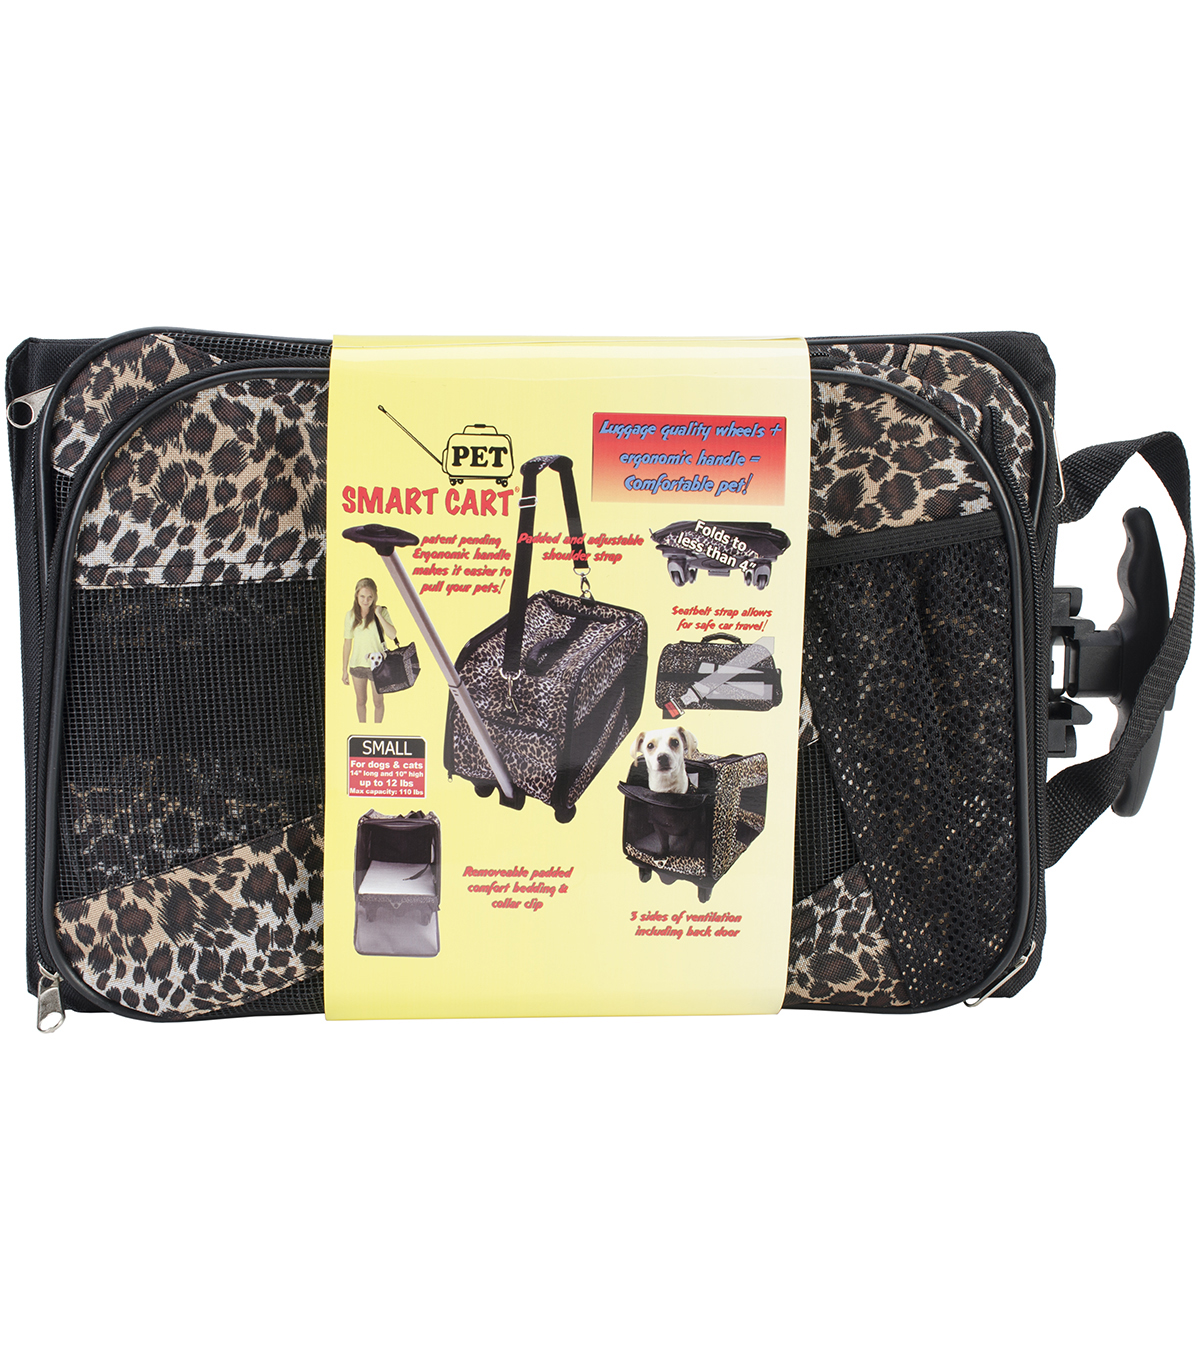 Dbest Pet Smart Cart Leopard Small Carrier 18\u0027\u0027x4\u0027\u0027x11\u0027\u0027